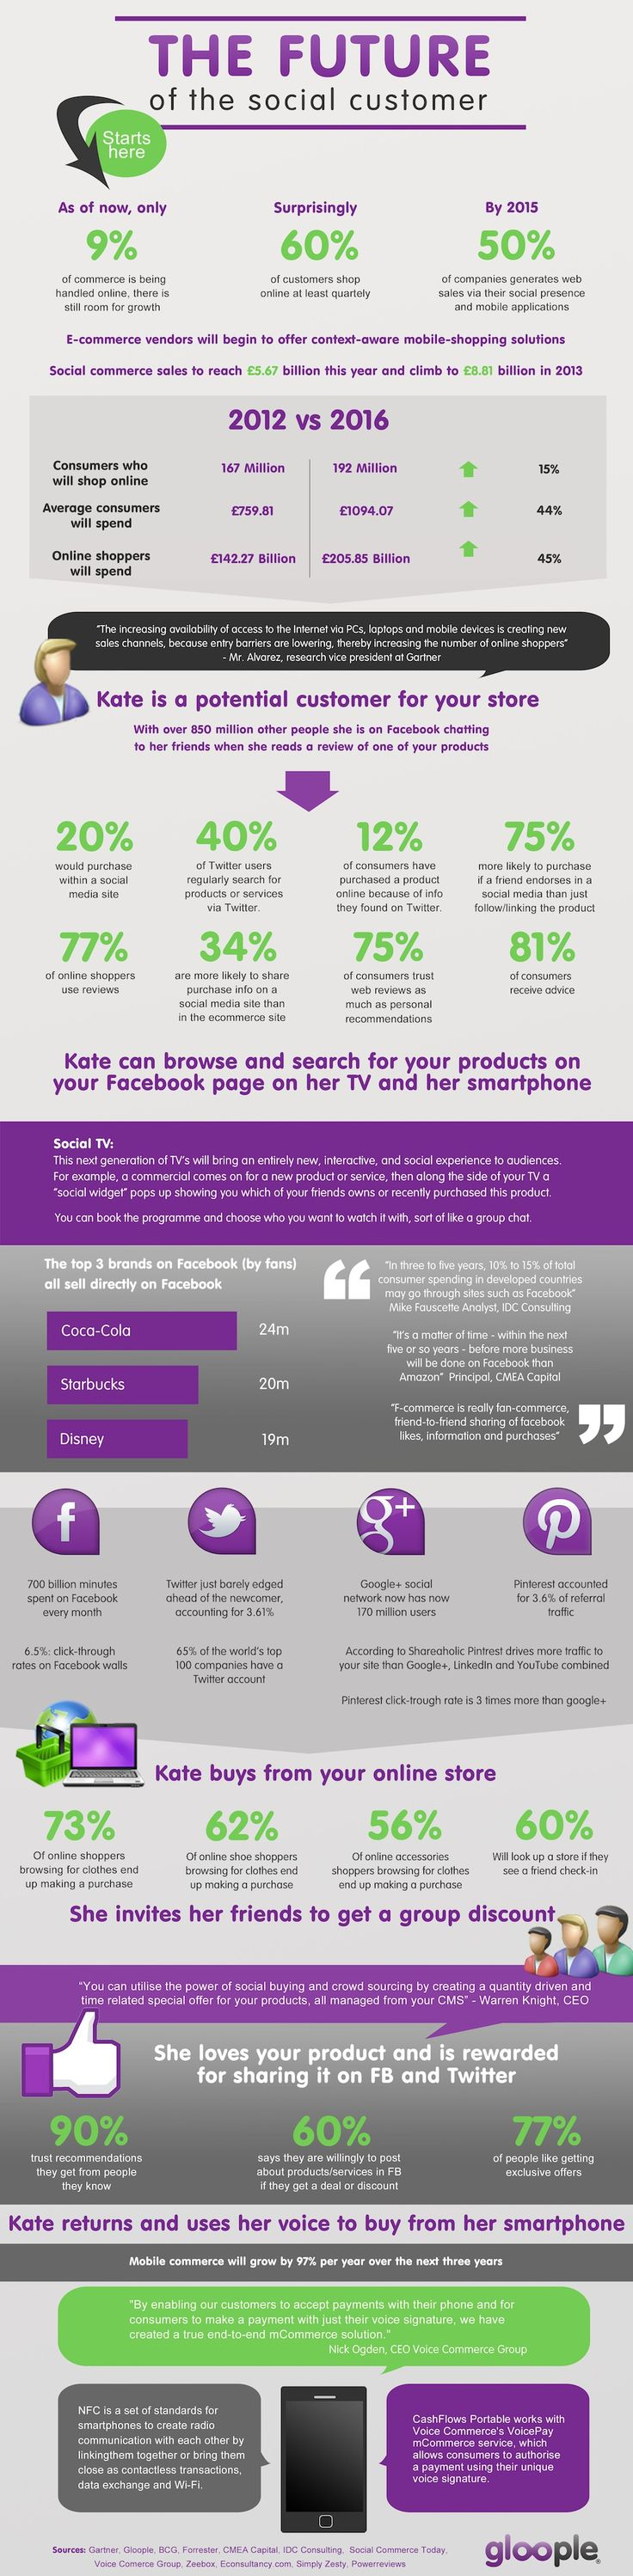 Twitter, Facebook, Pinterest And The Future Of The Social Customer #socialmedia #infographic